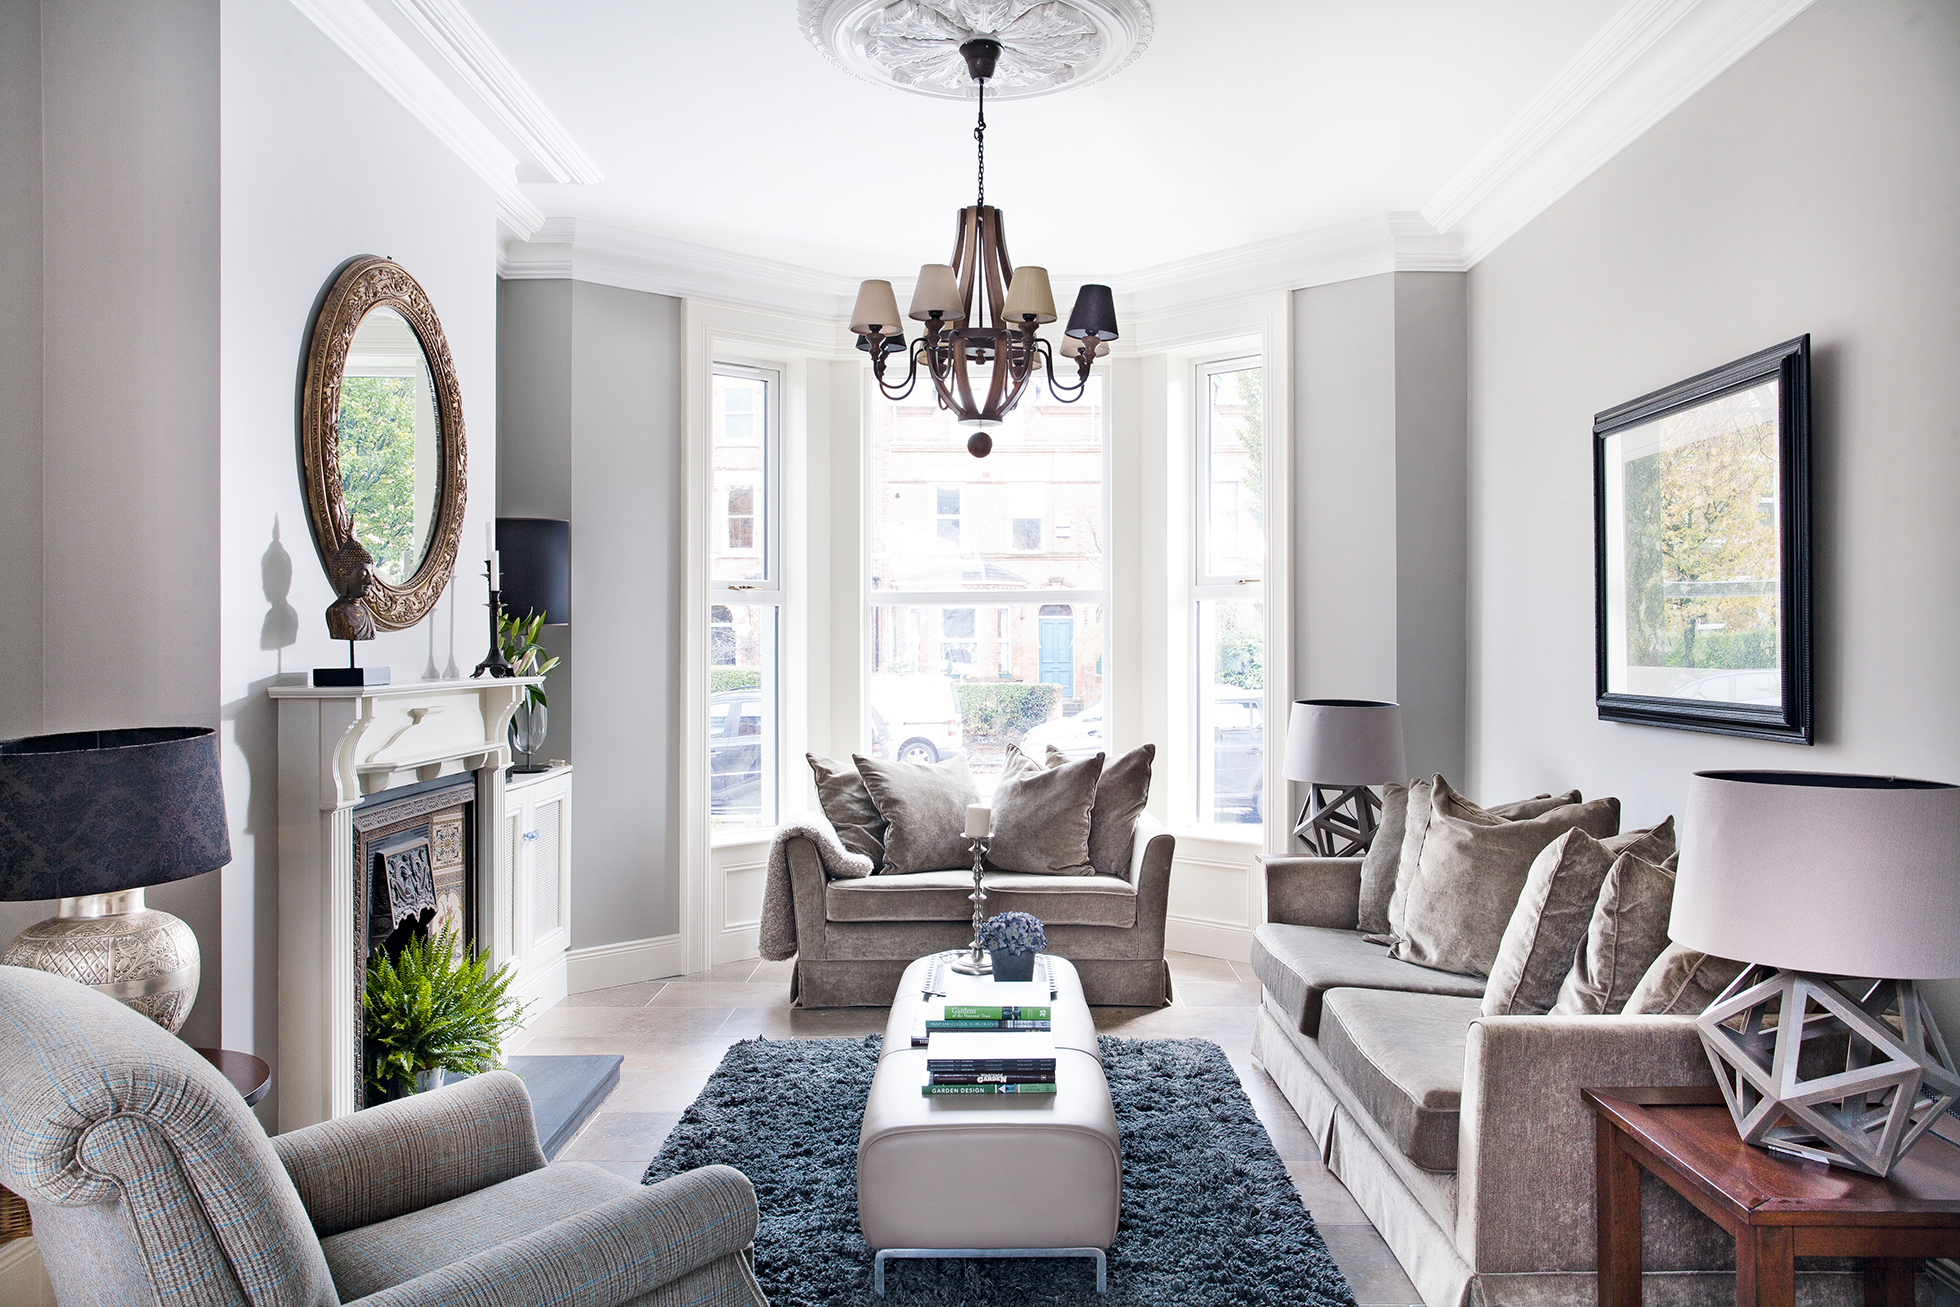 Real Home: A Stylishly Renovated Victorian Townhouse   Real Homes